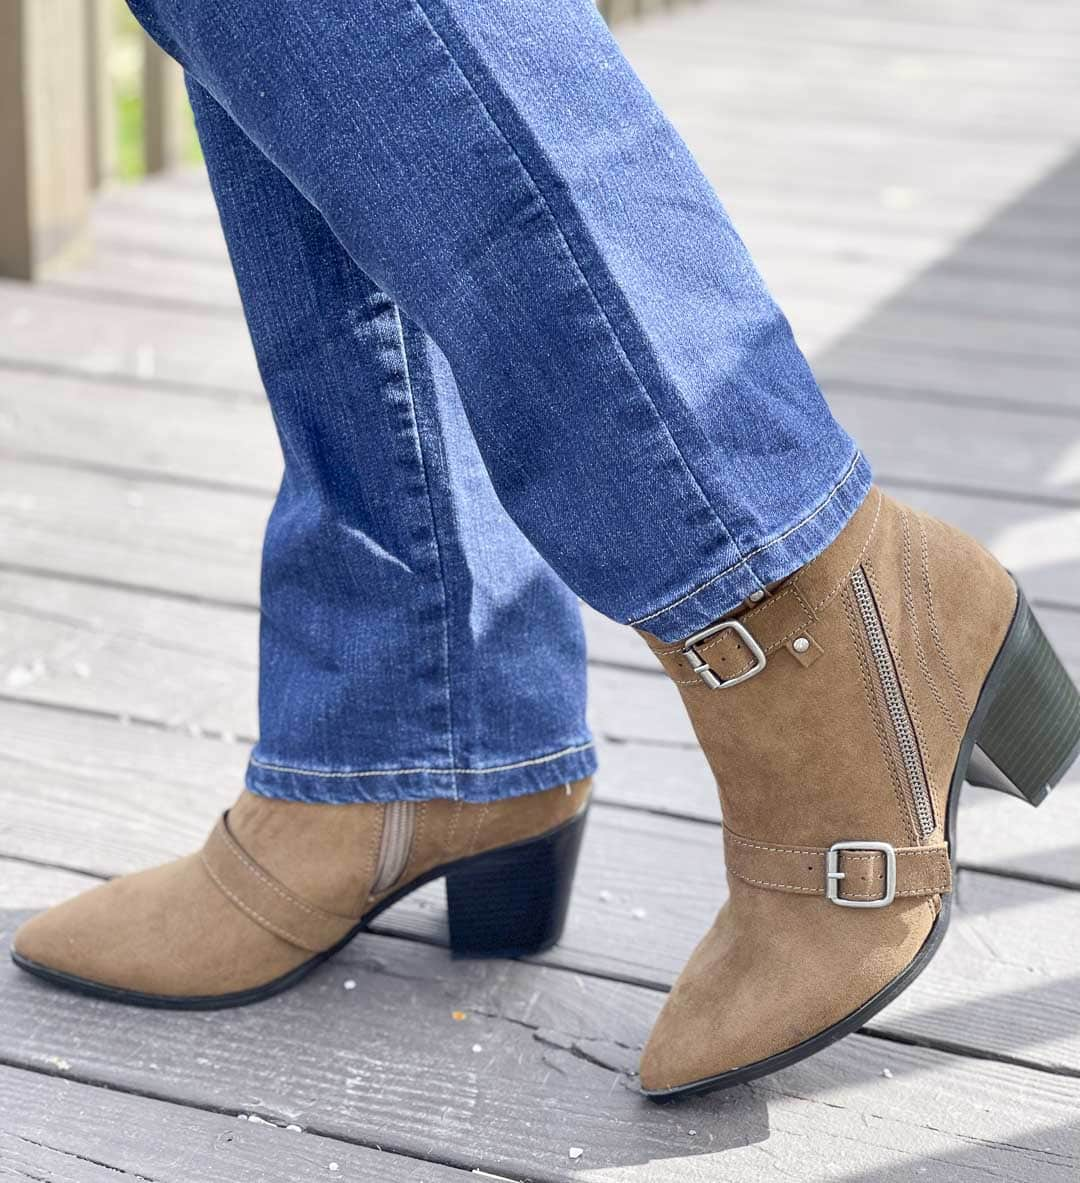 Over 40 Fashion Blogger, Tania Stephens, is showing her recent Walmart haul including these buckled faux suede ankle boots